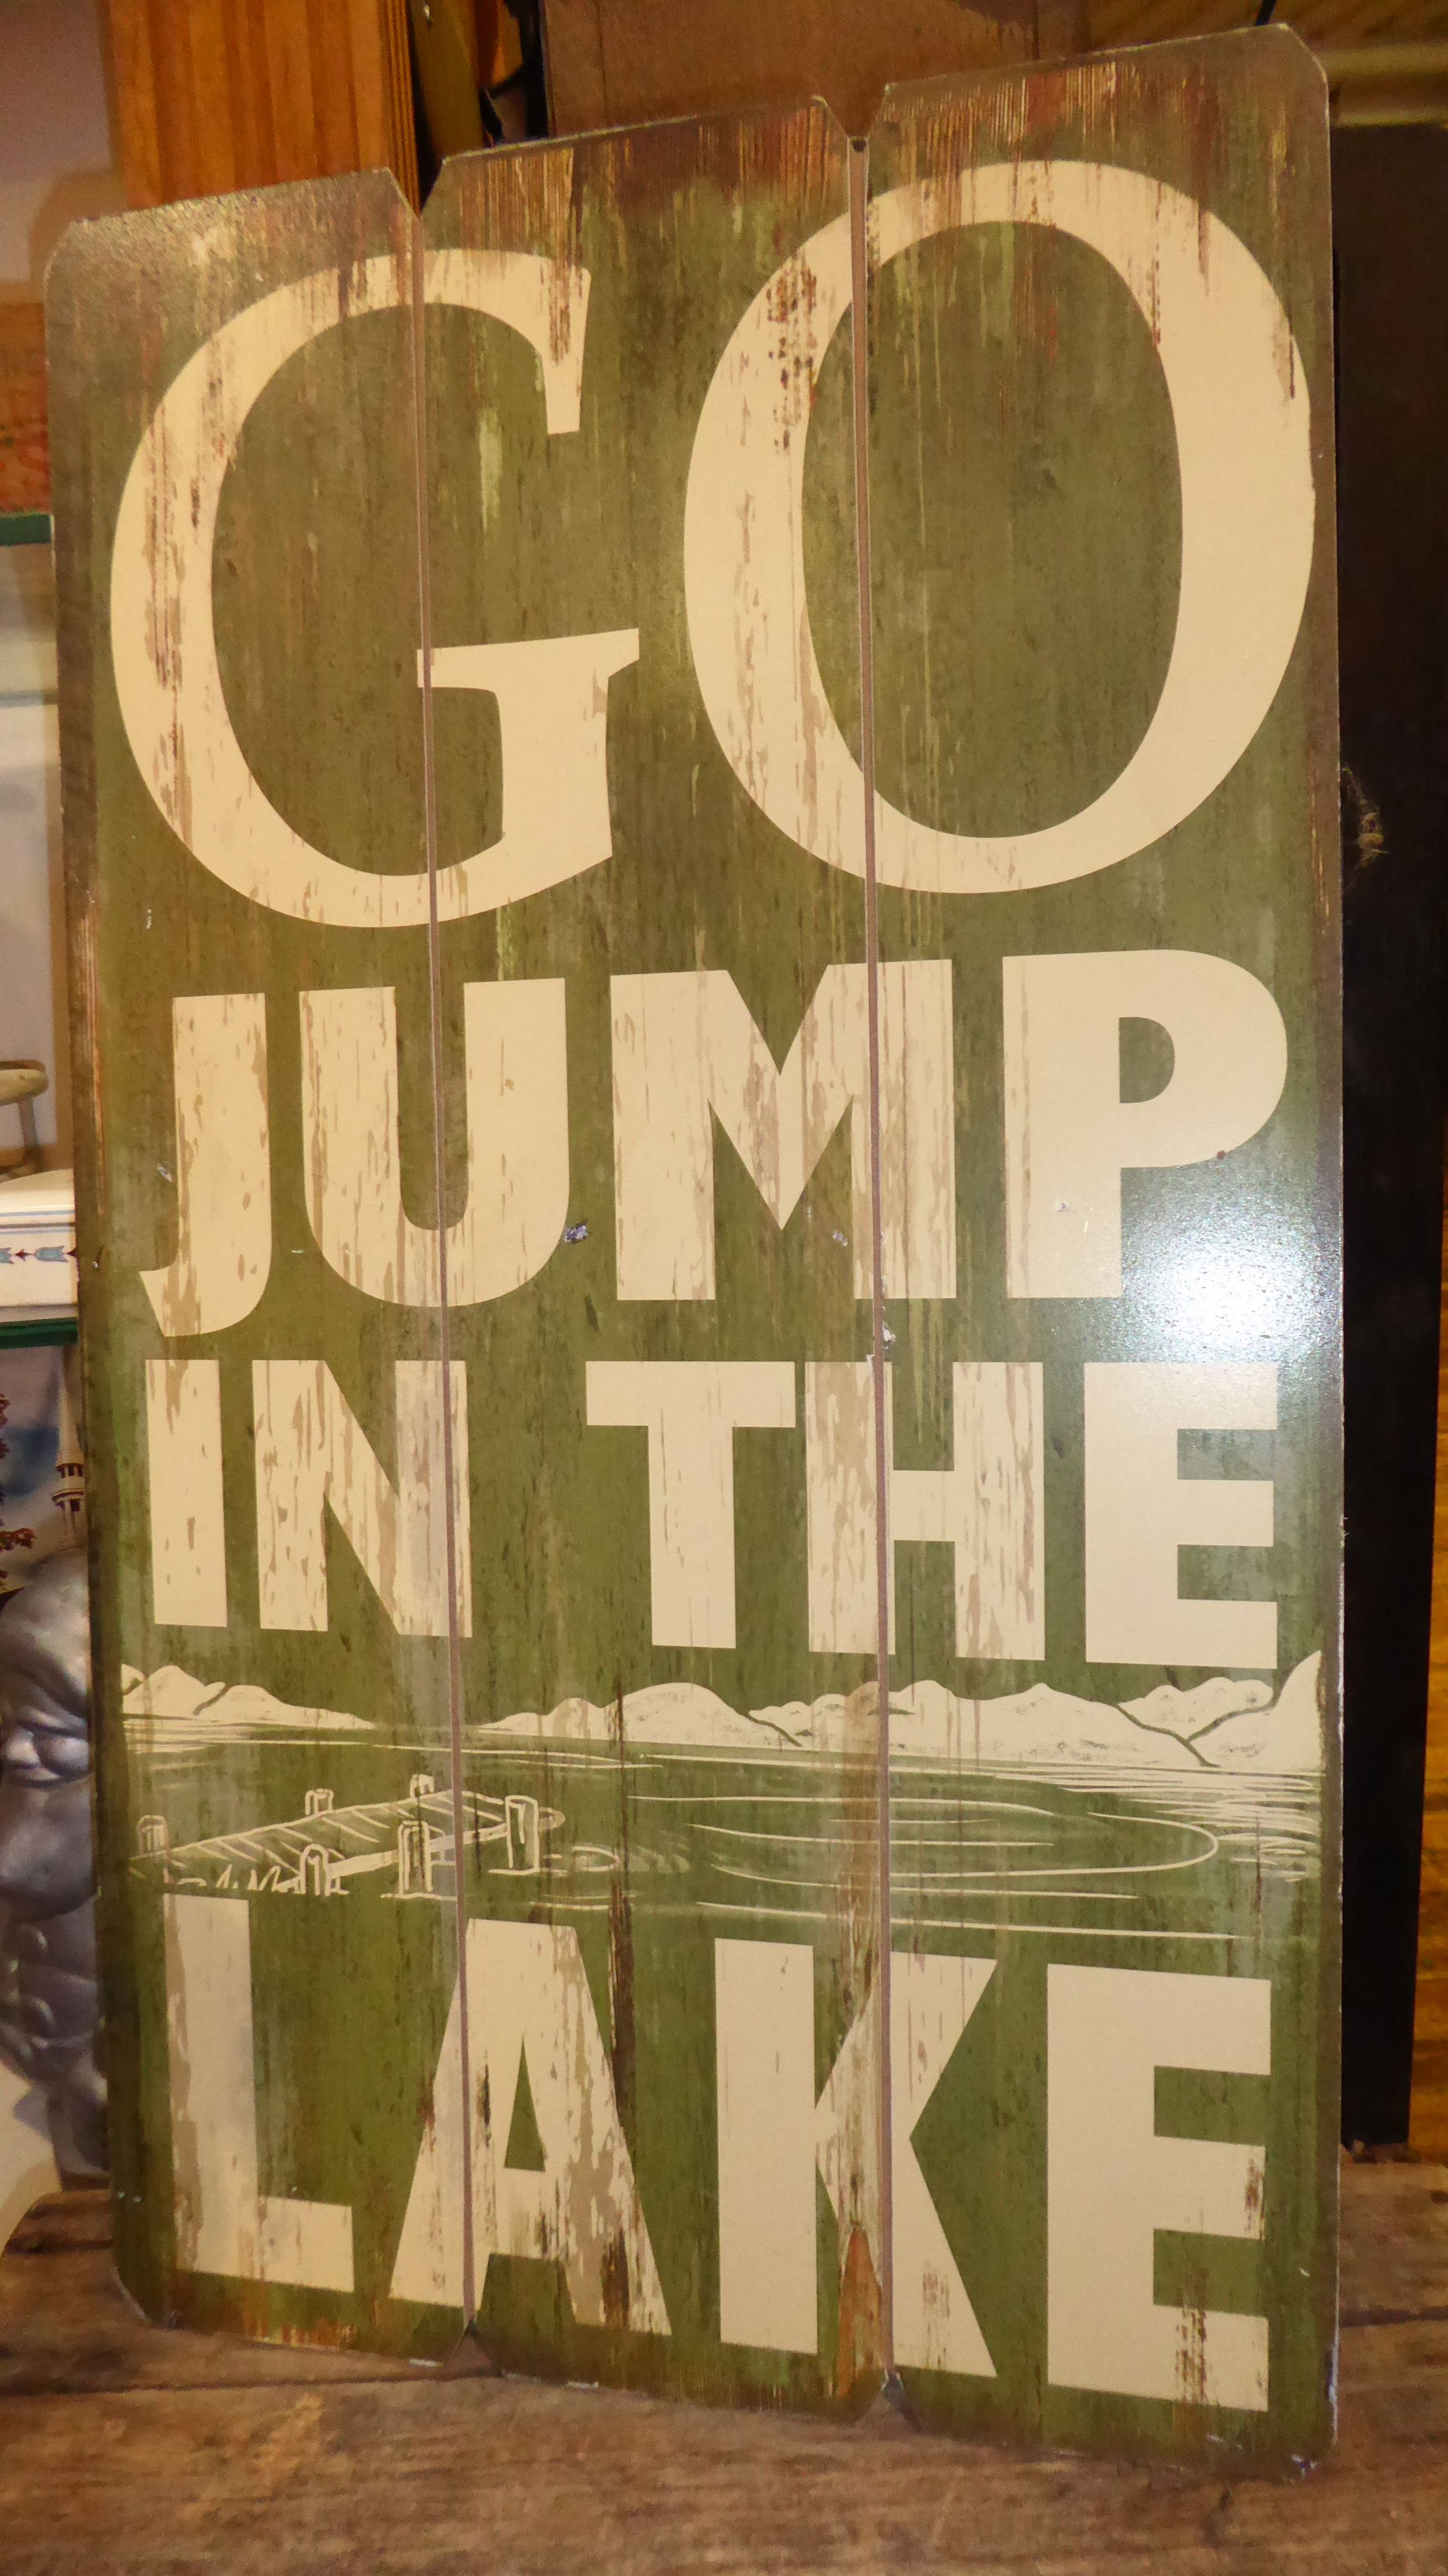 Go Jump In The Lake Sign From Booth 100 3900 Strasburg